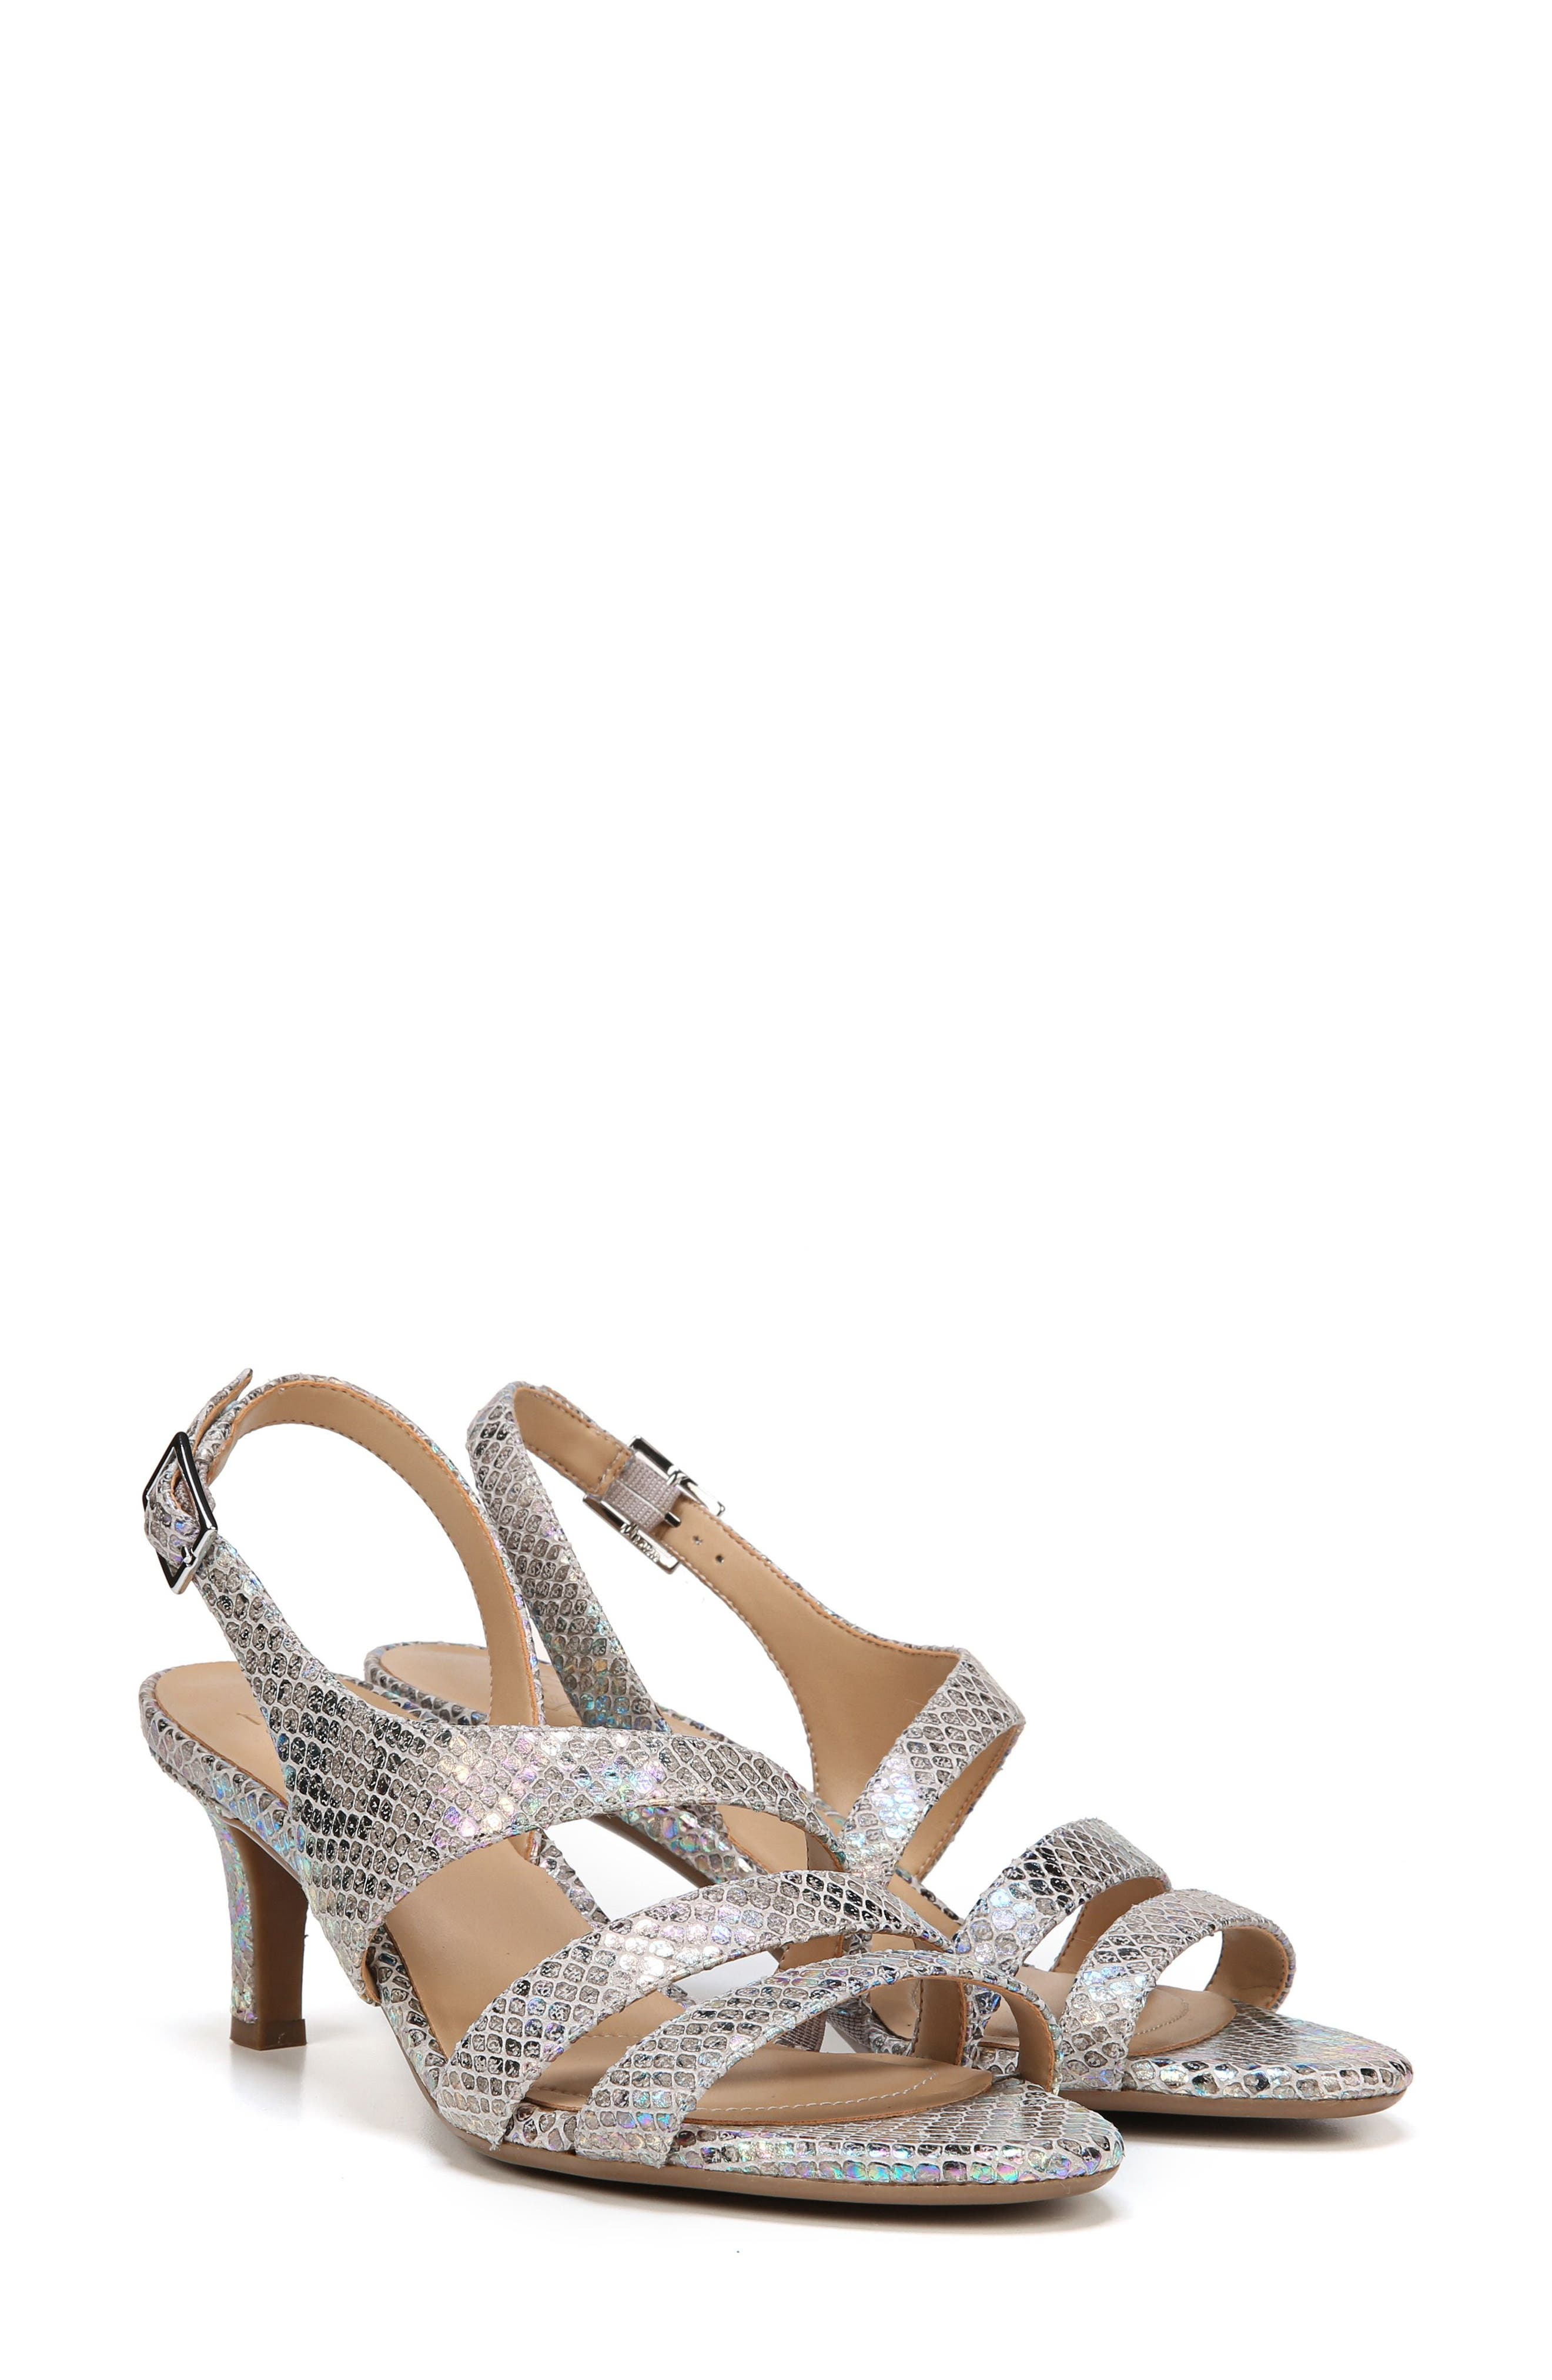 NATURALIZER, Taimi Sandal, Alternate thumbnail 8, color, SILVER SNAKE LEATHER PRINT